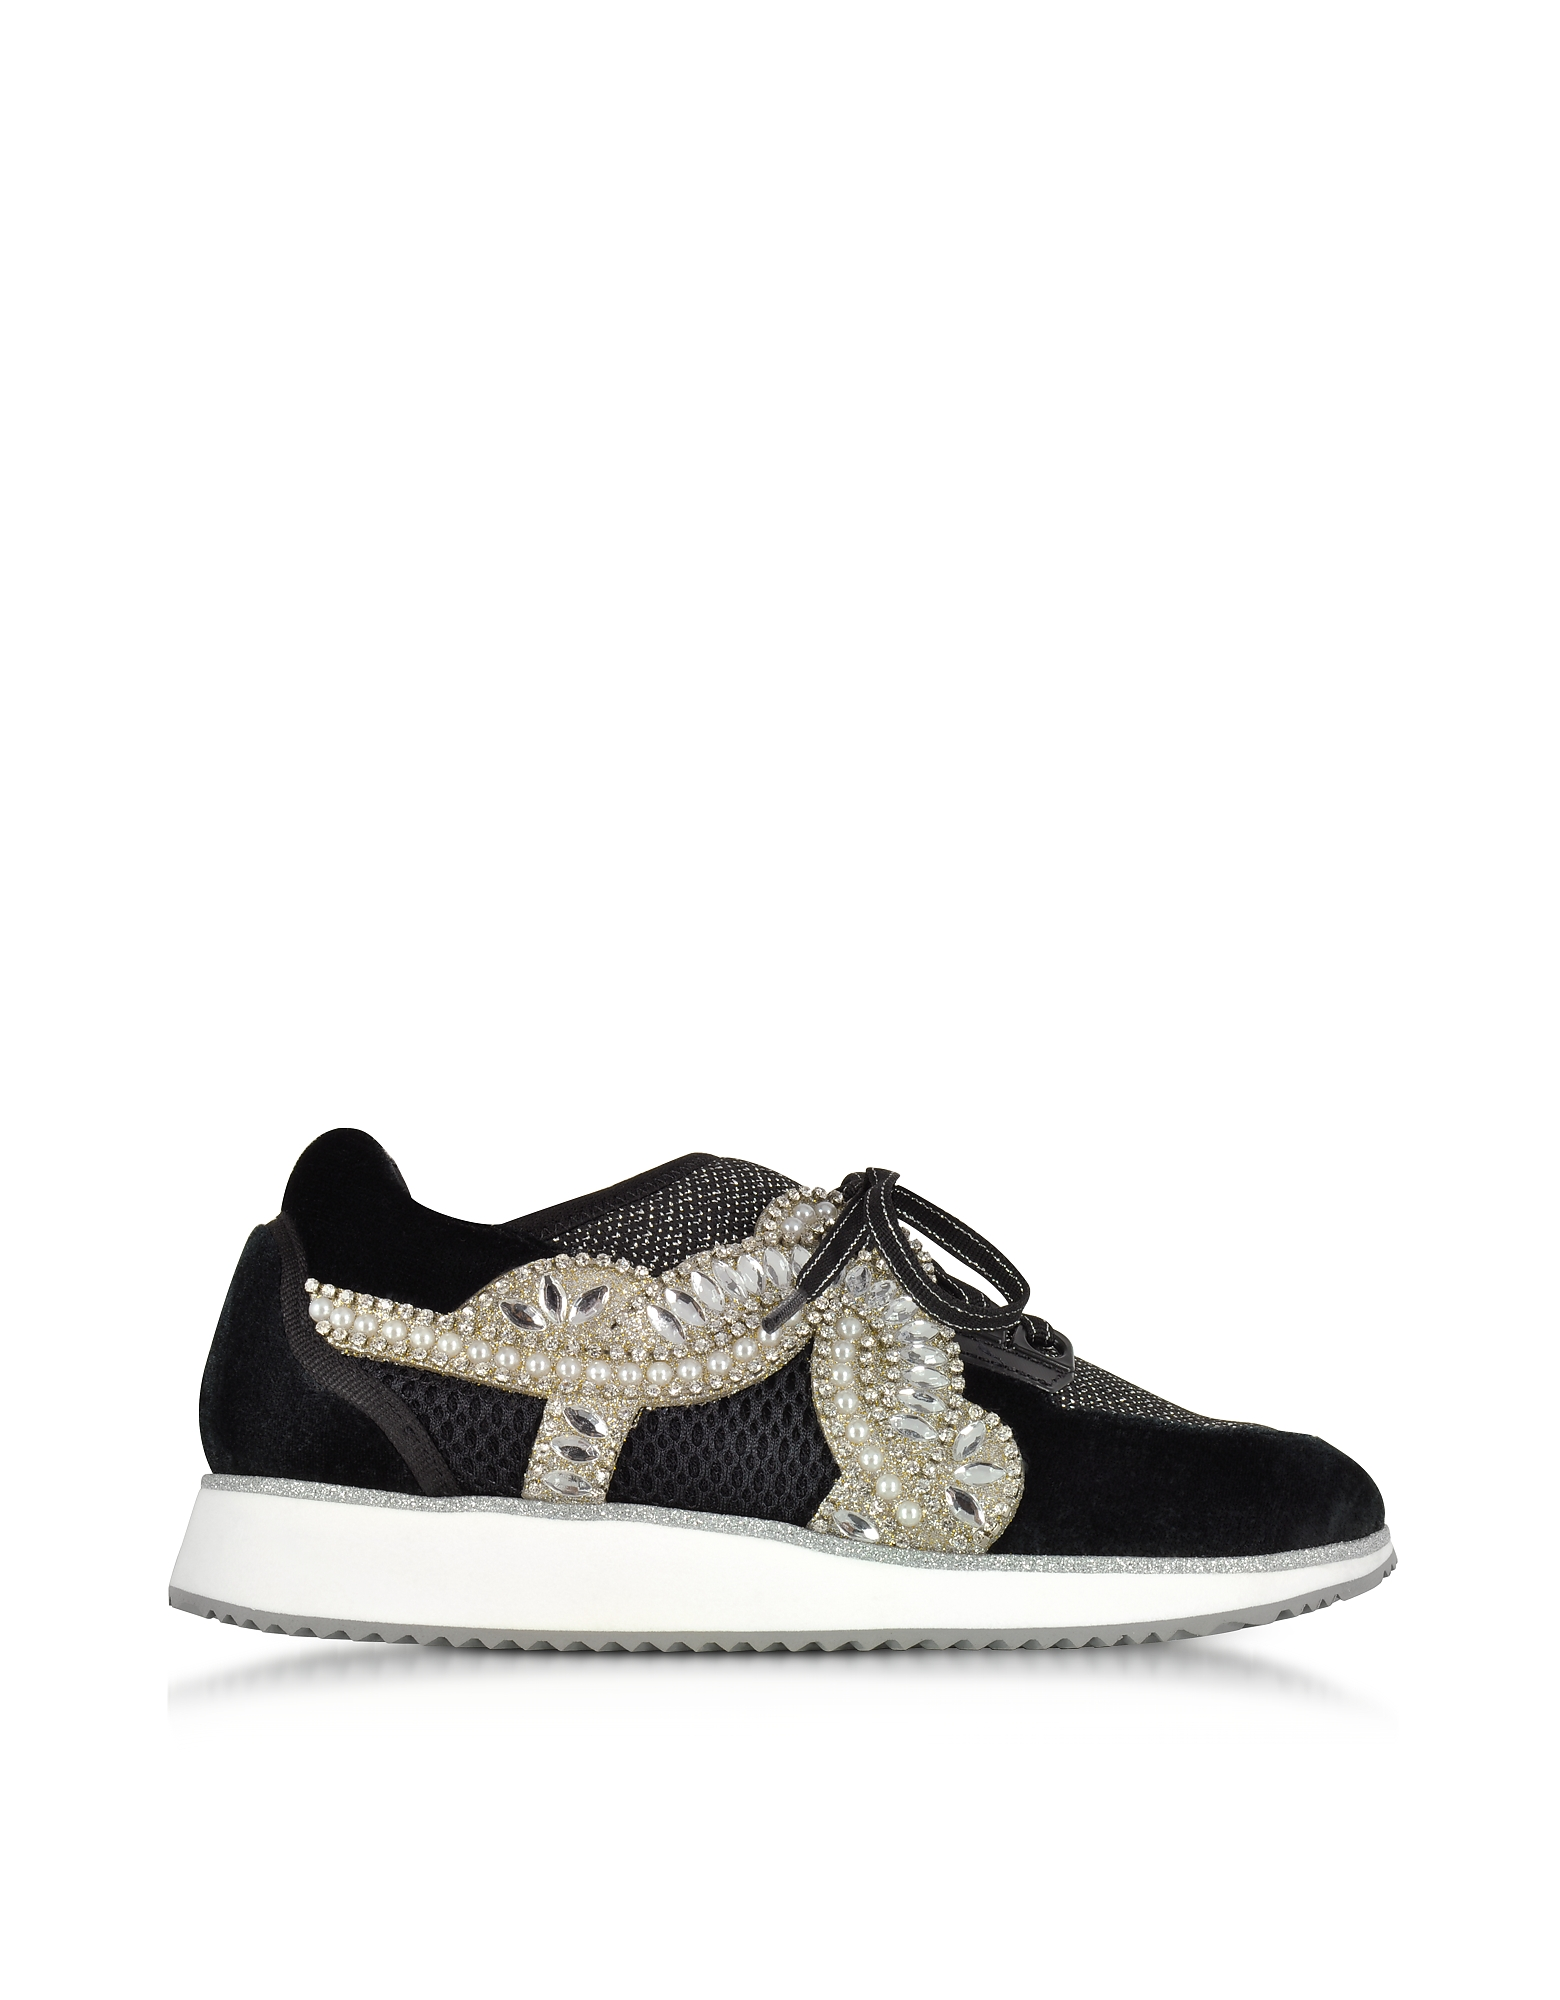 Sophia Webster Shoes, Royalty Black Low Top Sneakers